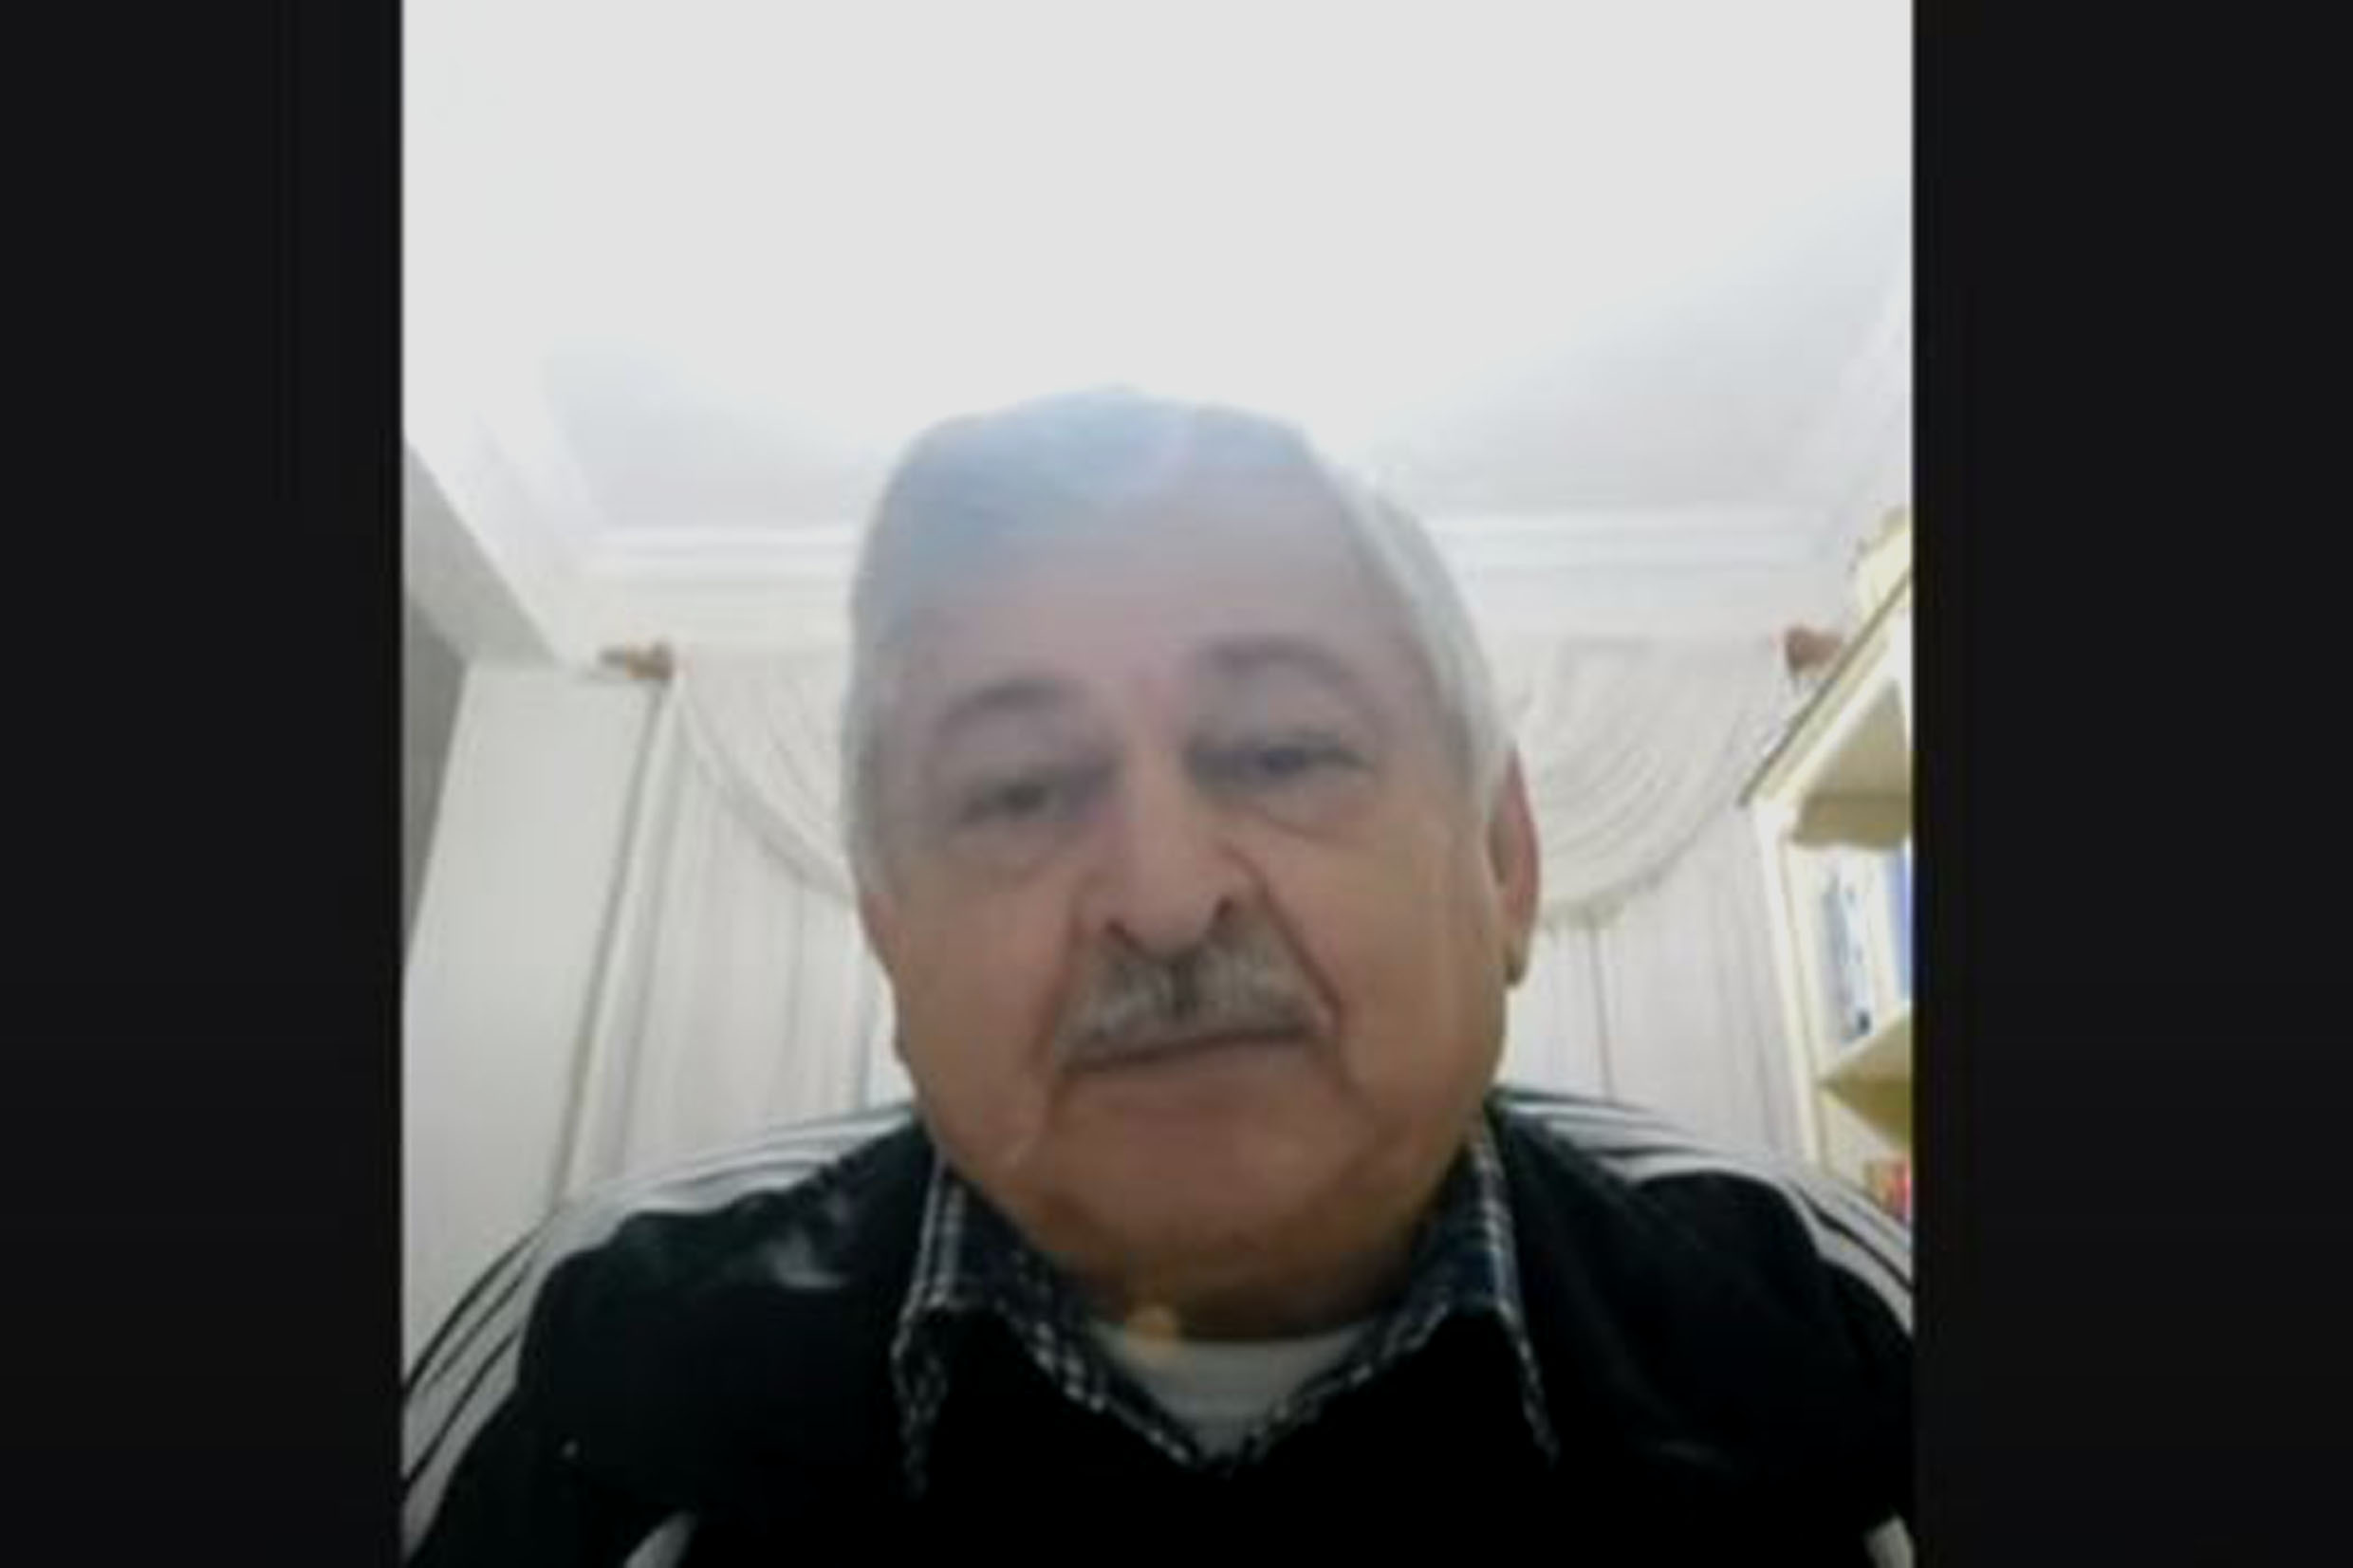 Admir Rodrigues<a style='float:right' href='https://www3.al.sp.gov.br/repositorio/noticia/N-07-2021/fg270712.jpg' target=_blank><img src='/_img/material-file-download-white.png' width='14px' alt='Clique para baixar a imagem'></a>